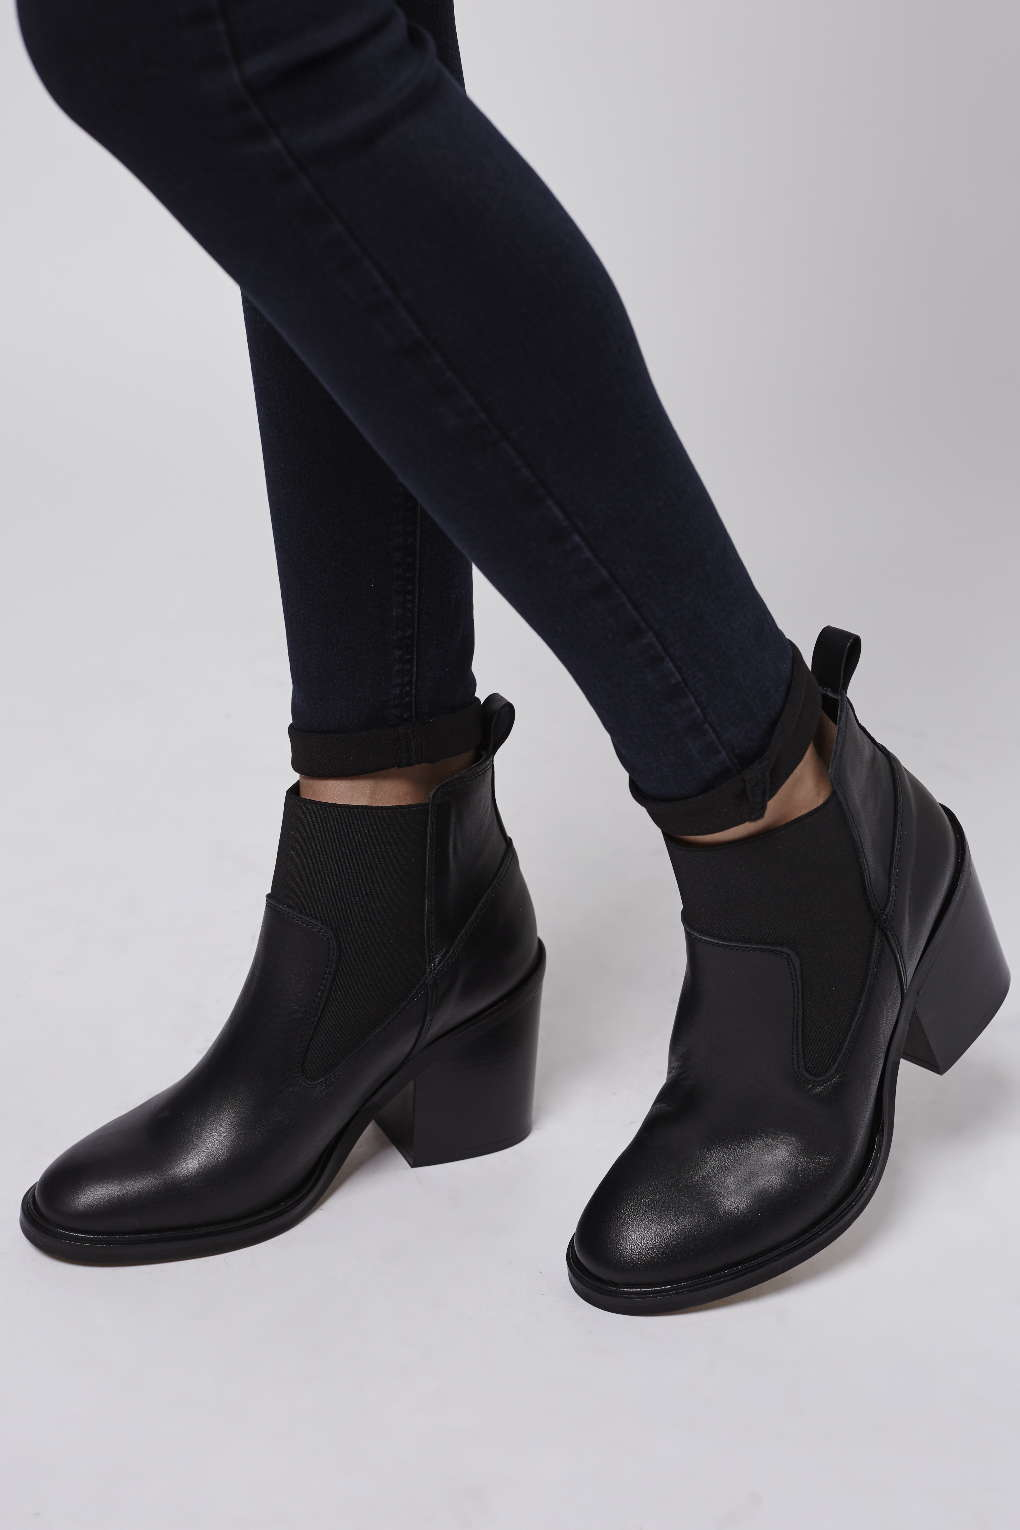 Topshop Womens Sculptured Heel Boots - Clearance Affordable Cheap Sale Outlet Locations For Sale Cheap Price yL54p3